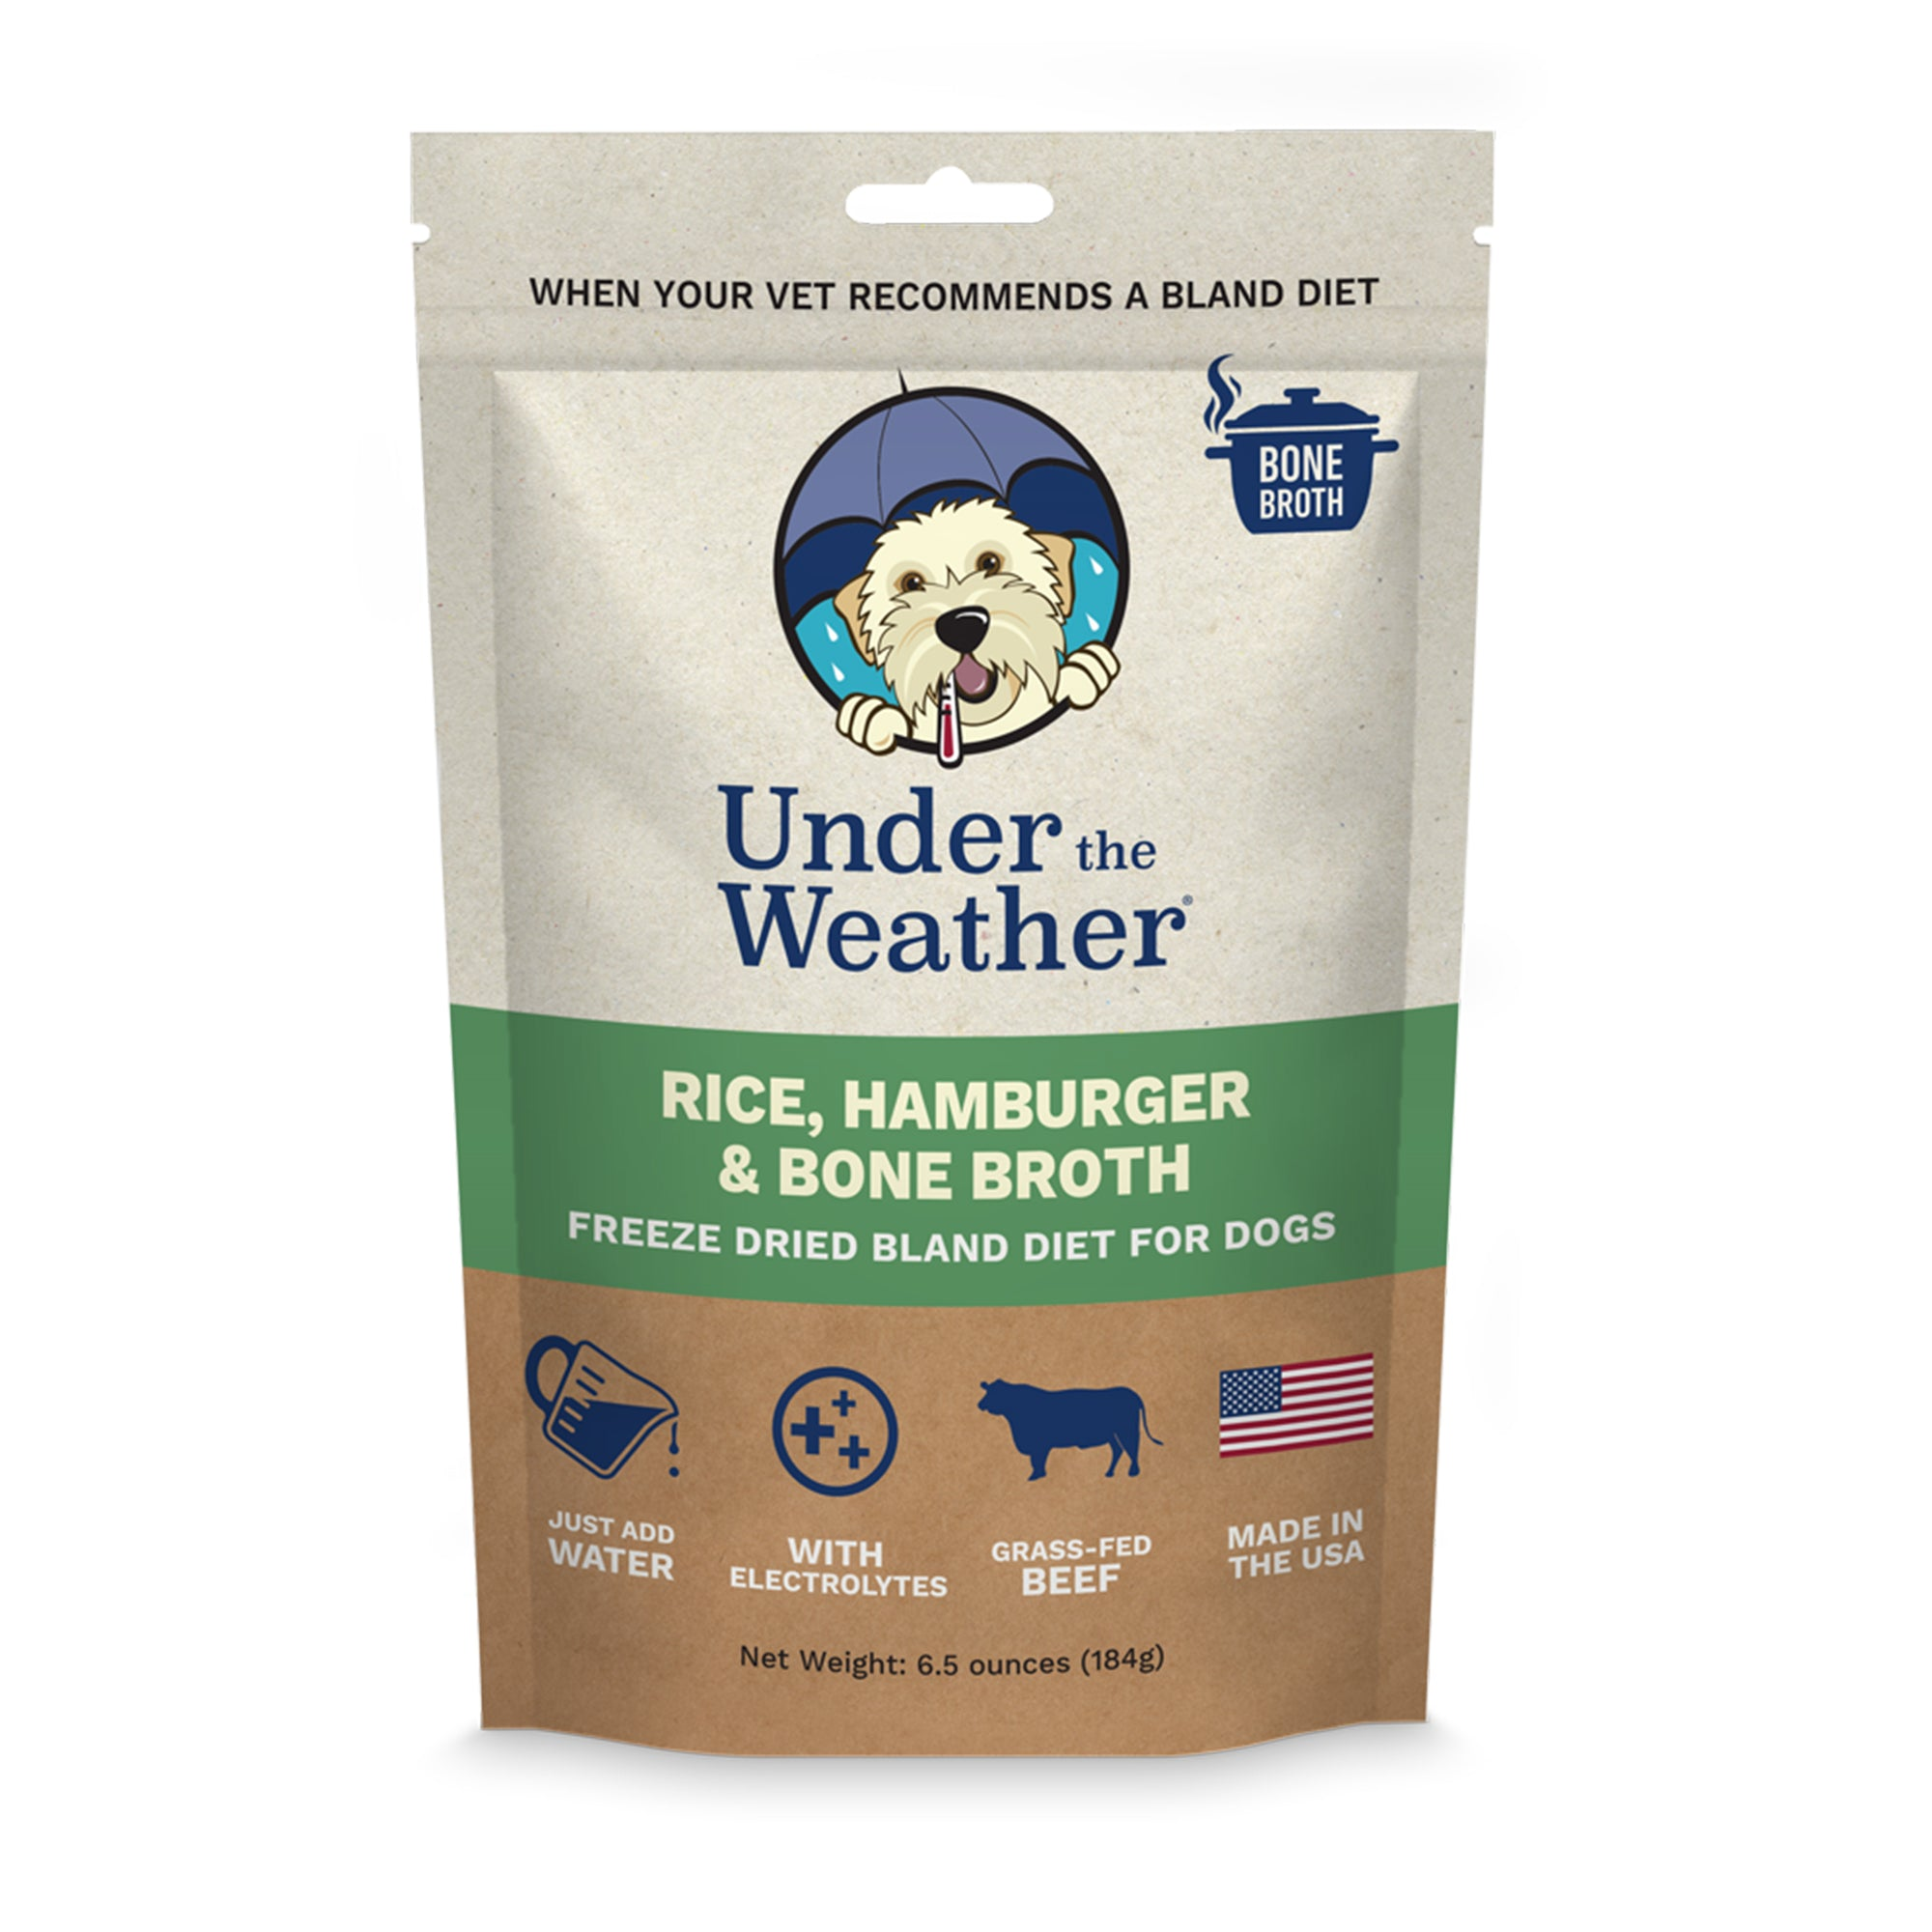 Hamburger, Rice, & Bone Broth Bland Diet For Dogs